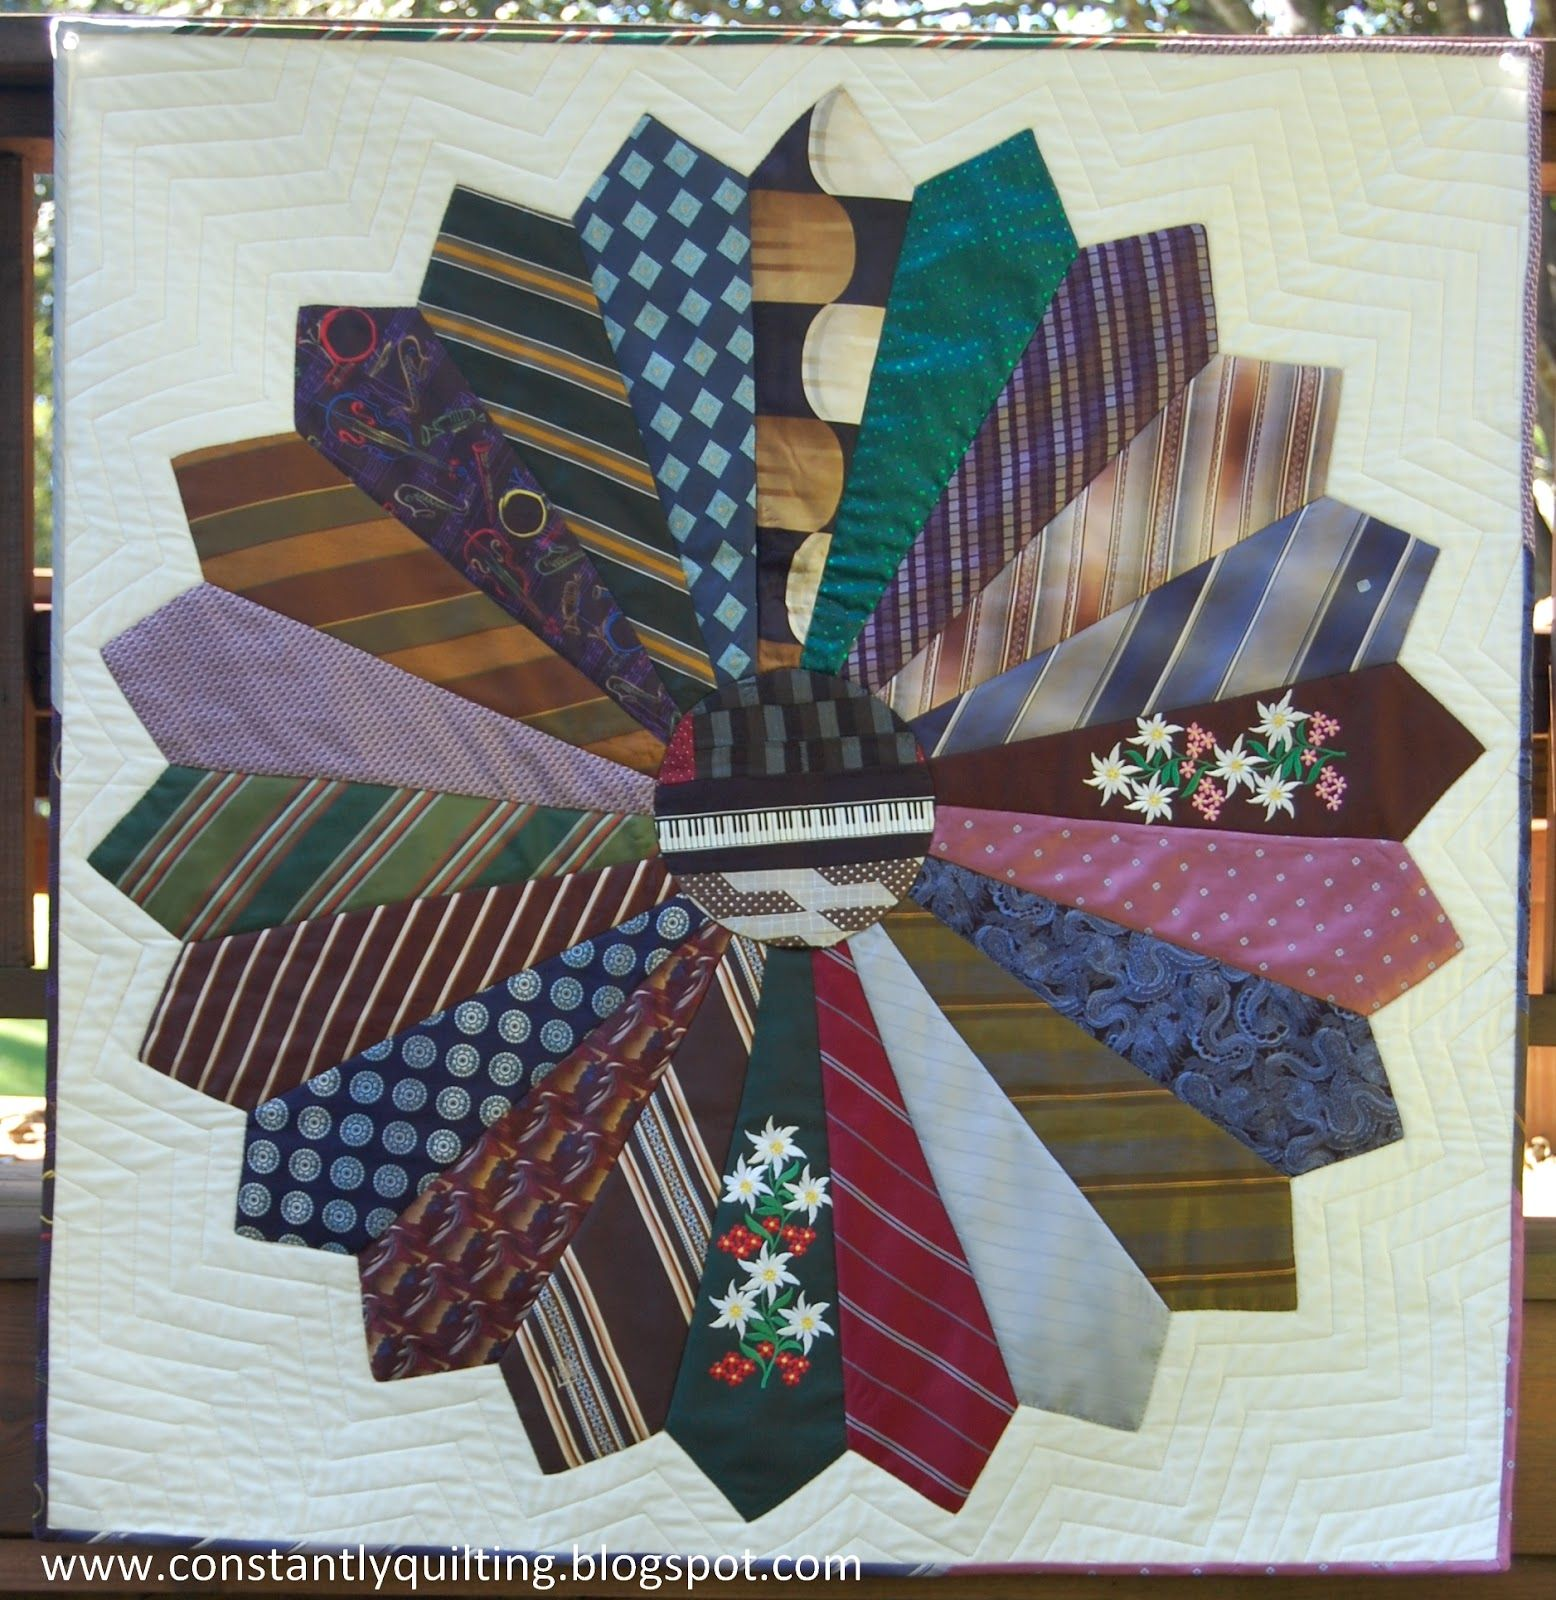 Men s Tie Quilt Patterns Free Constantly Quilting: Tie Quilt Finished! Joy Pinterest ...